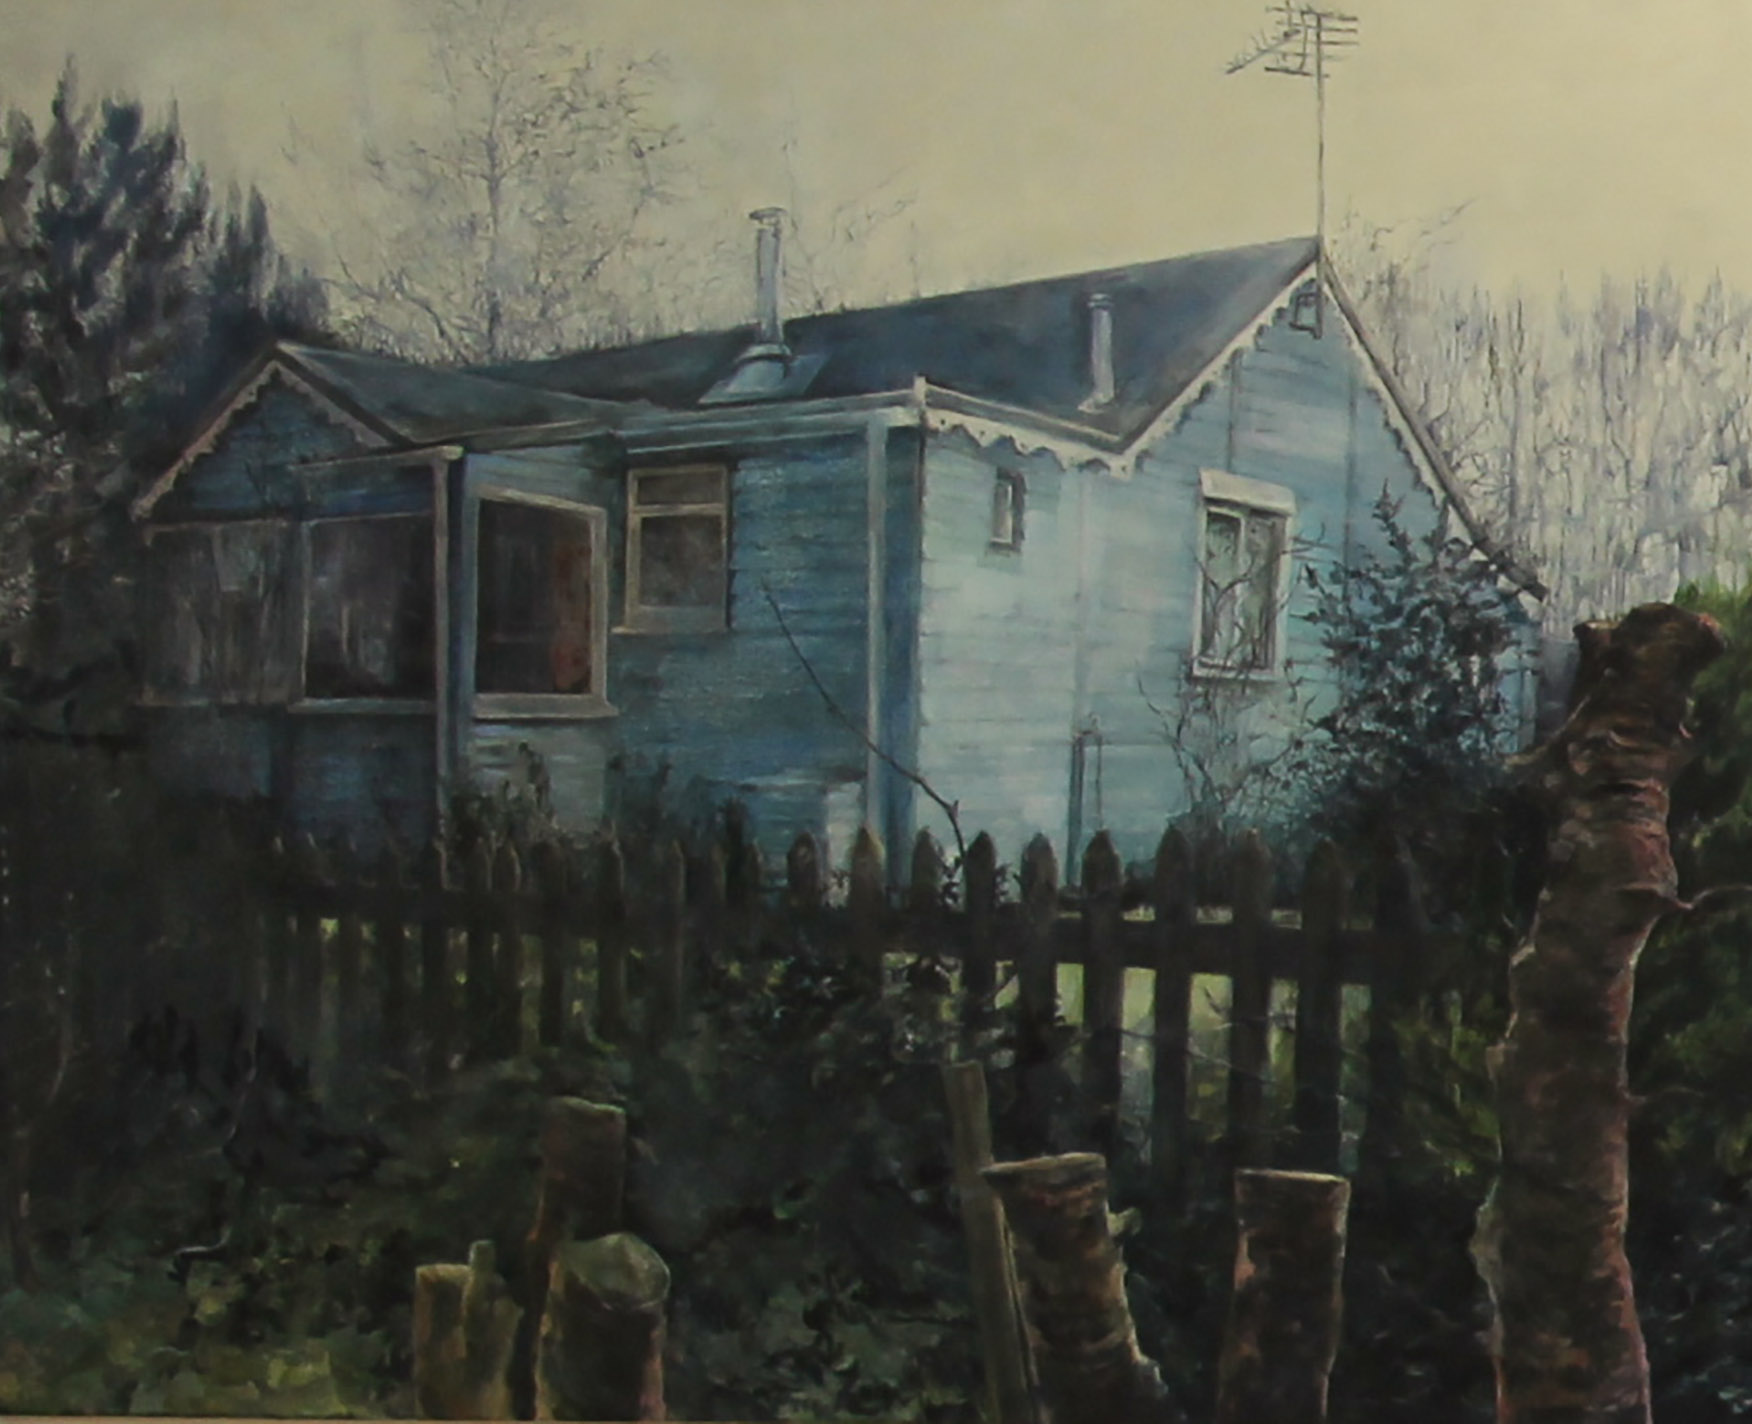 Judith Tucker, 4. There's always something you need to do that you've never done before, Oil on Canvas, 36 x 48 inches,  http://www.projectfitties.com/